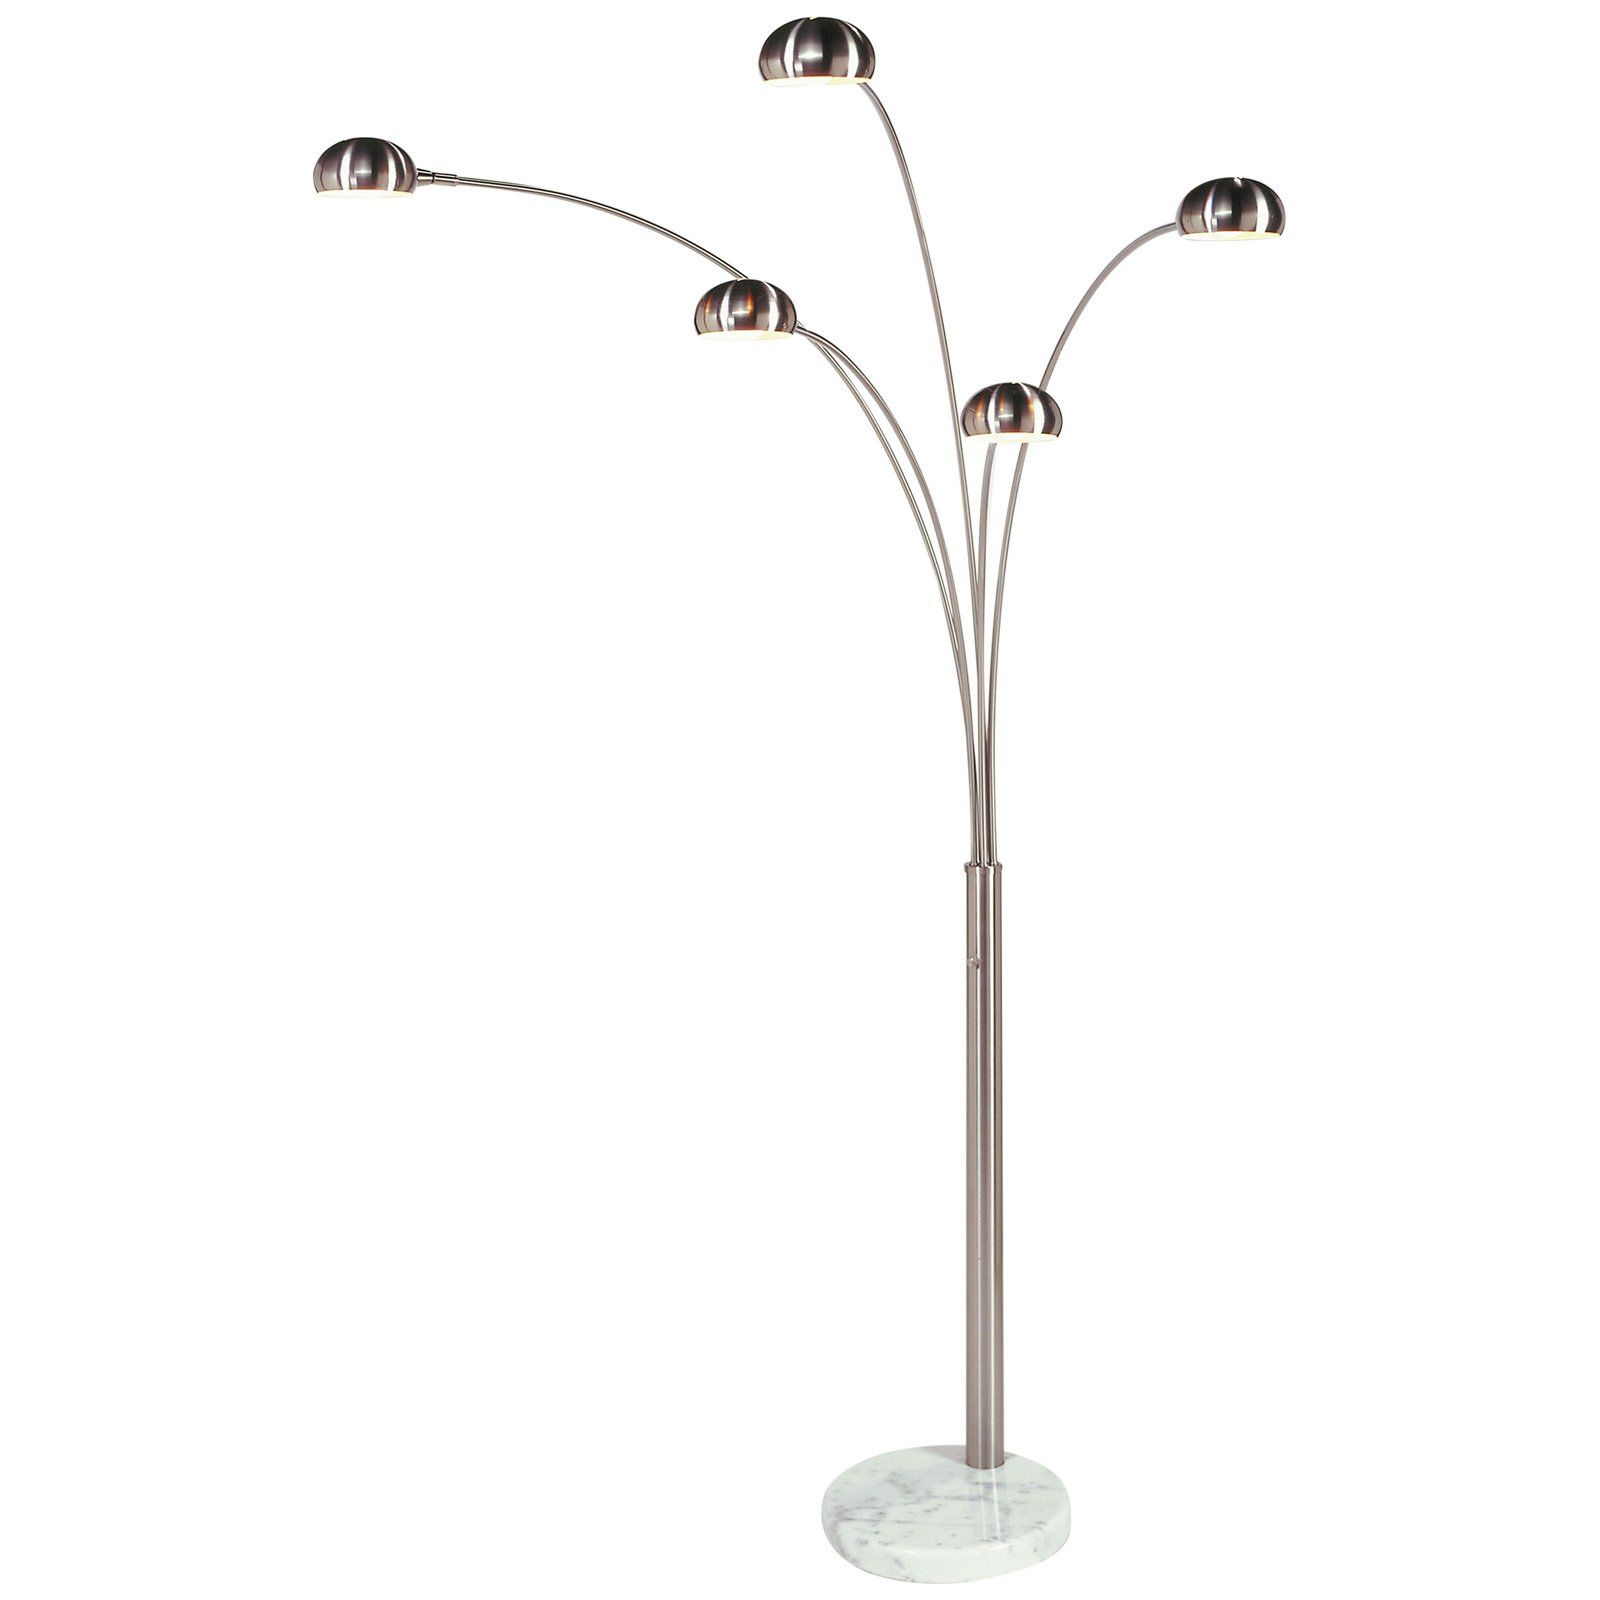 NOVA Of California Mushroom Arc Floor Lamp